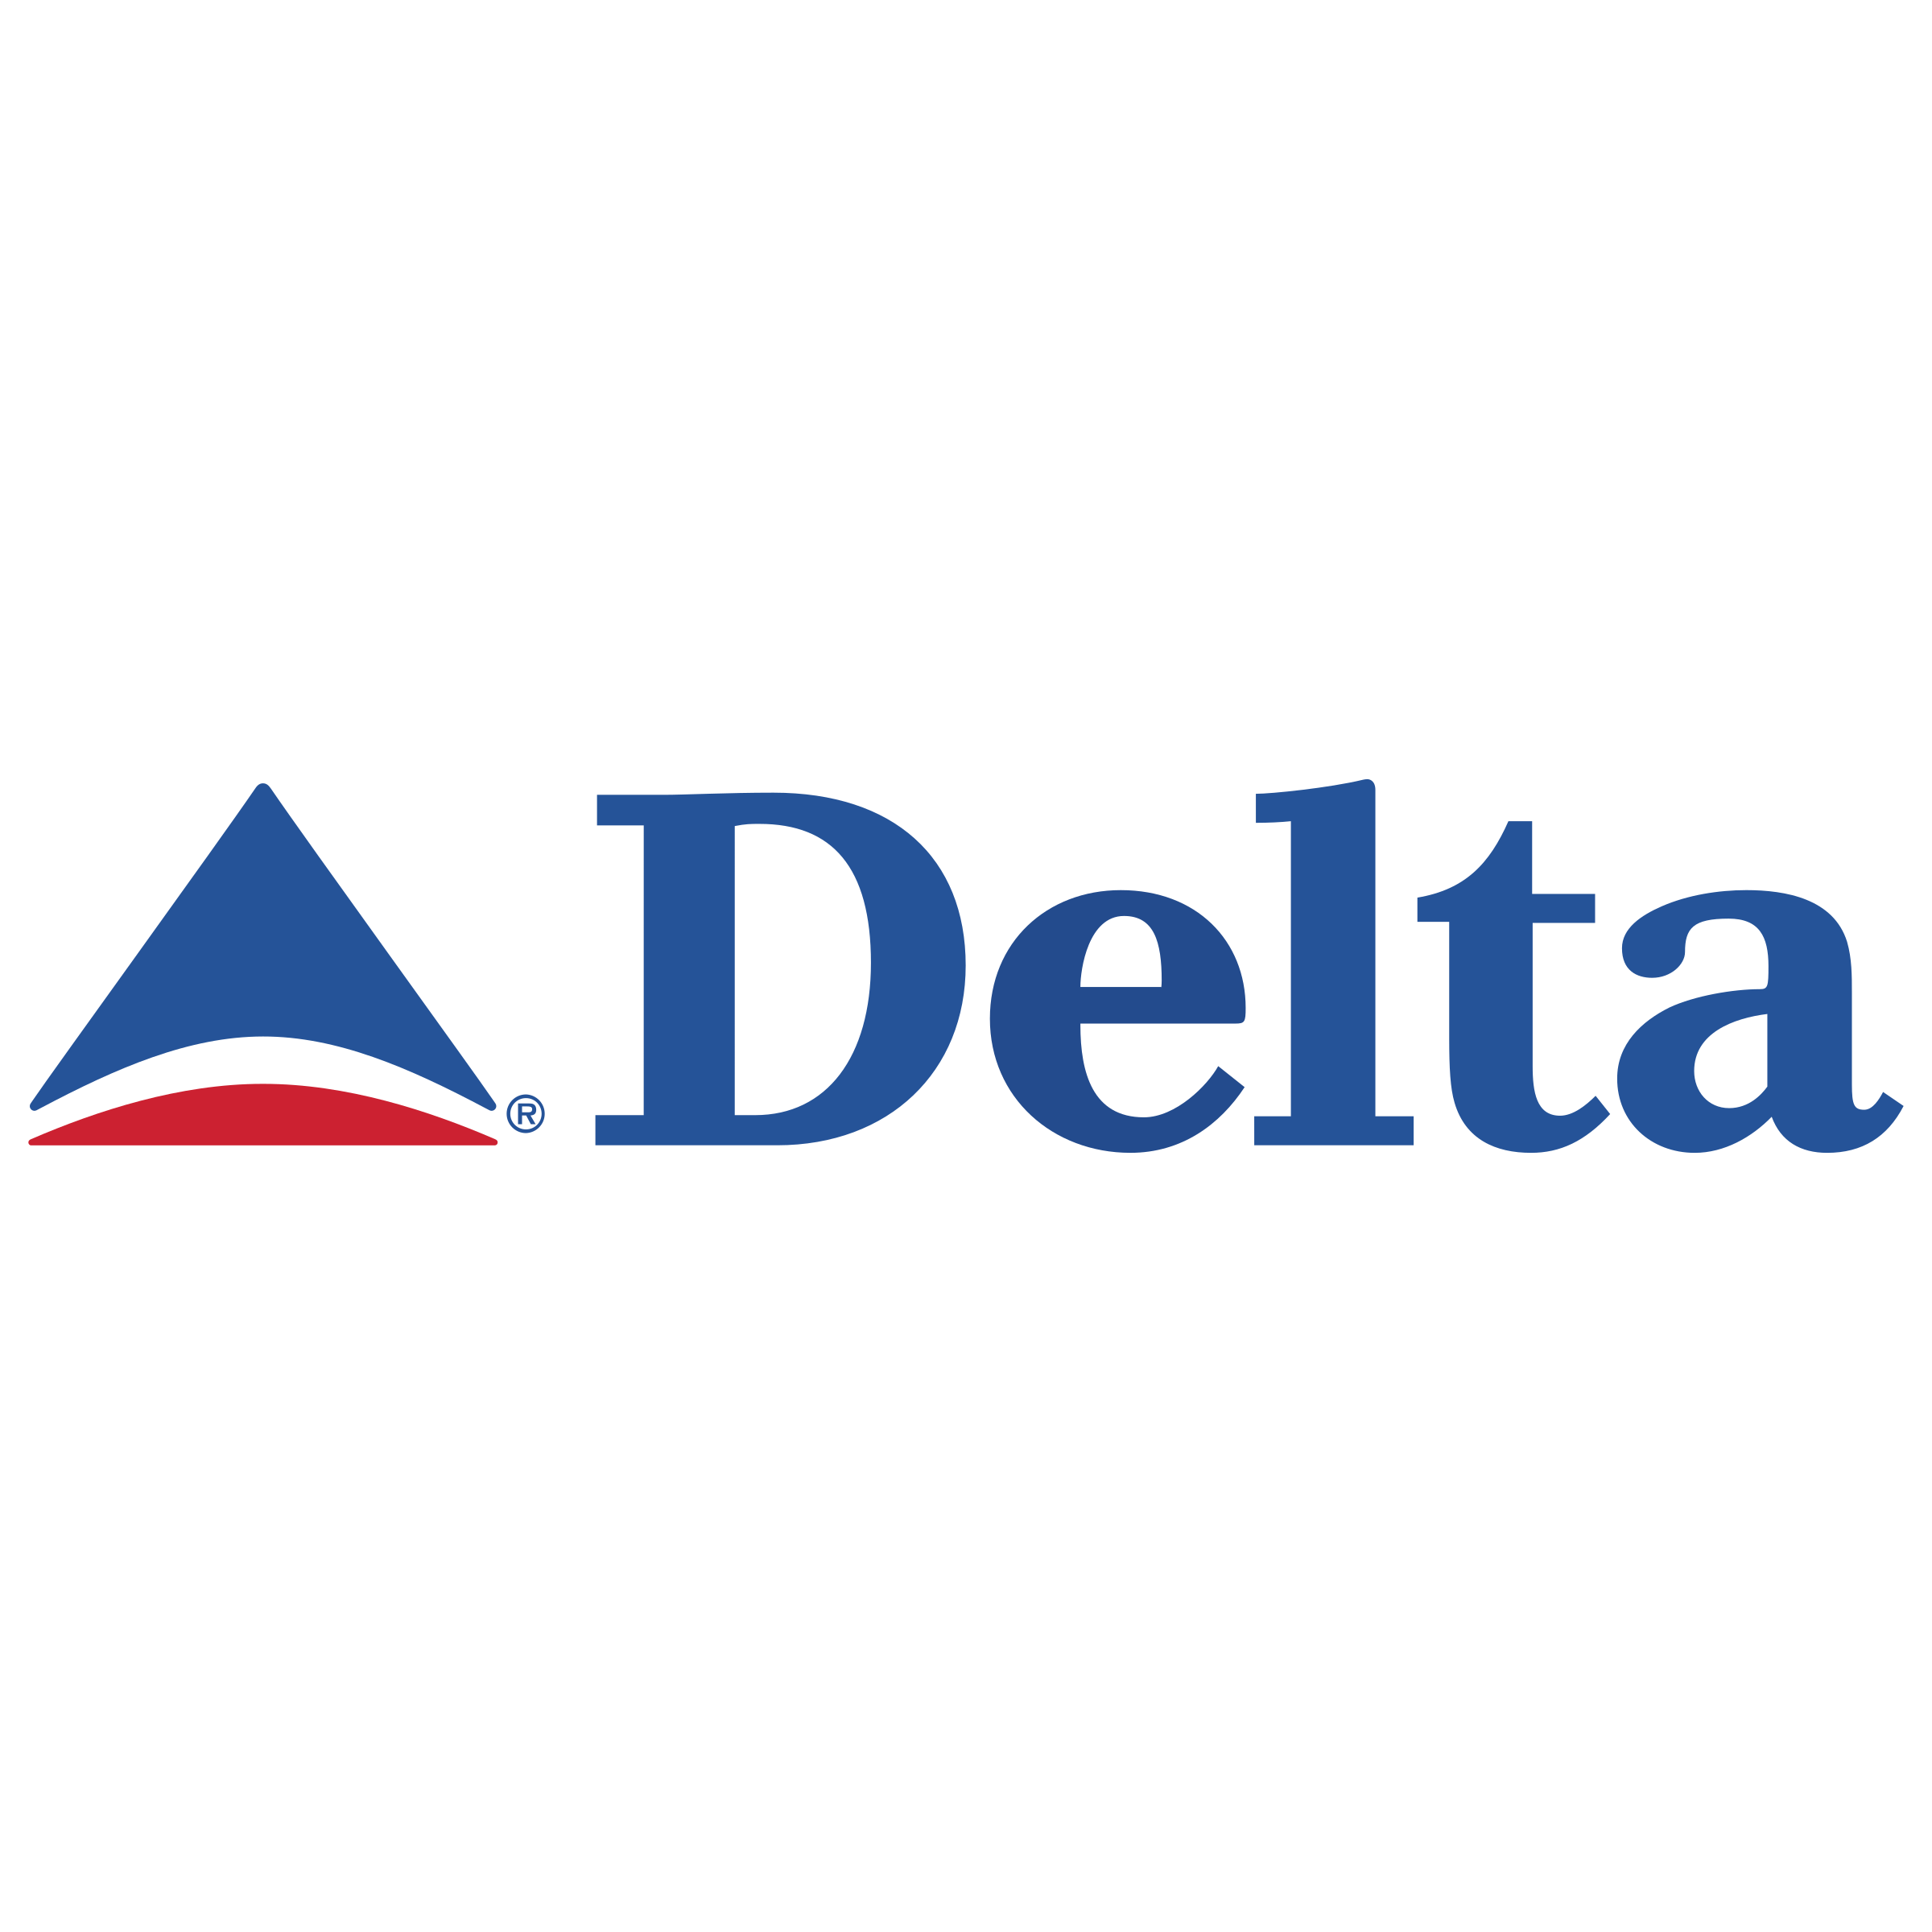 Delta Air Lines Logo PNG Transparent & SVG Vector.